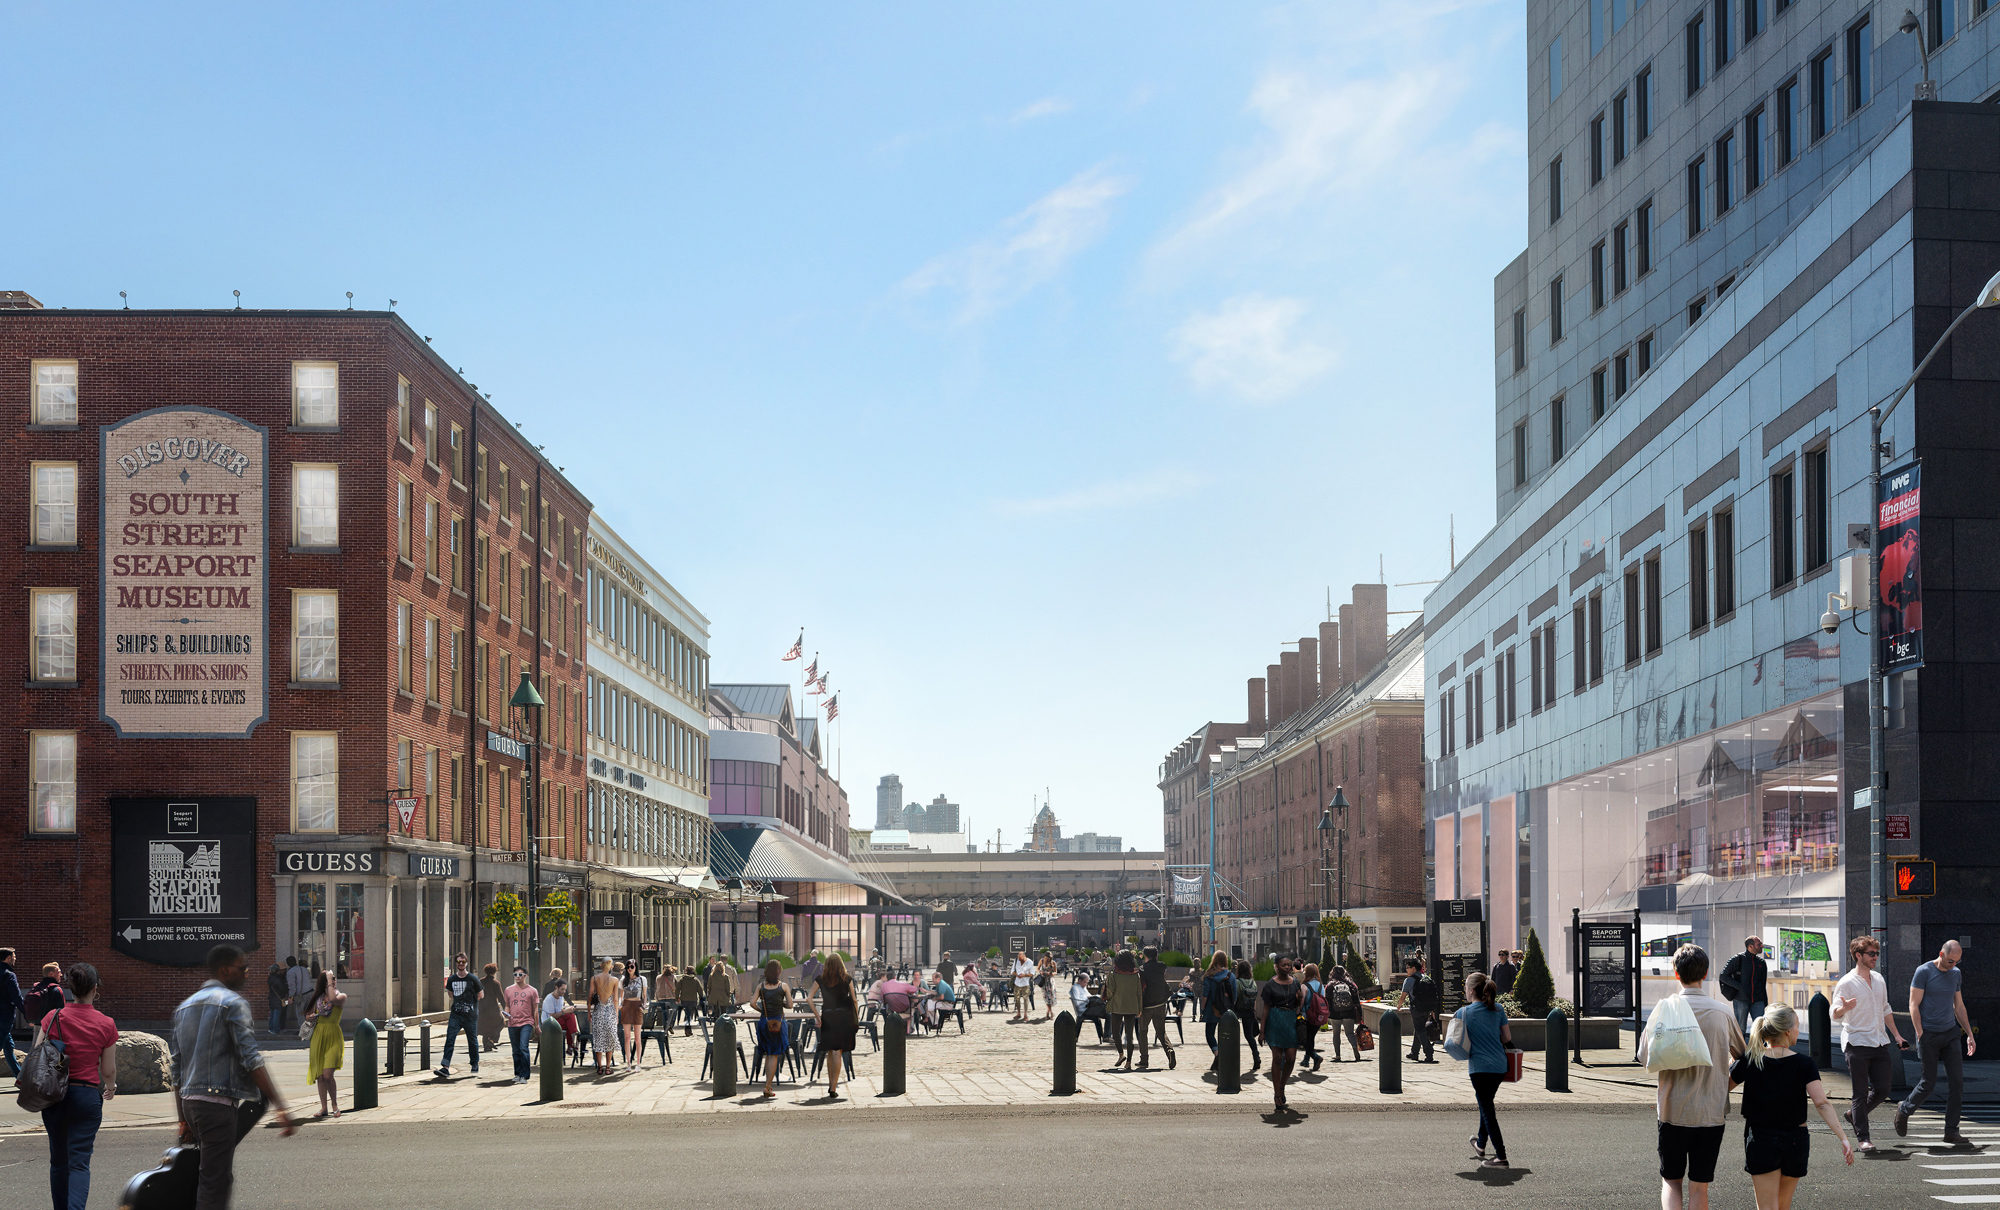 South Street Seaport Entrance By Day